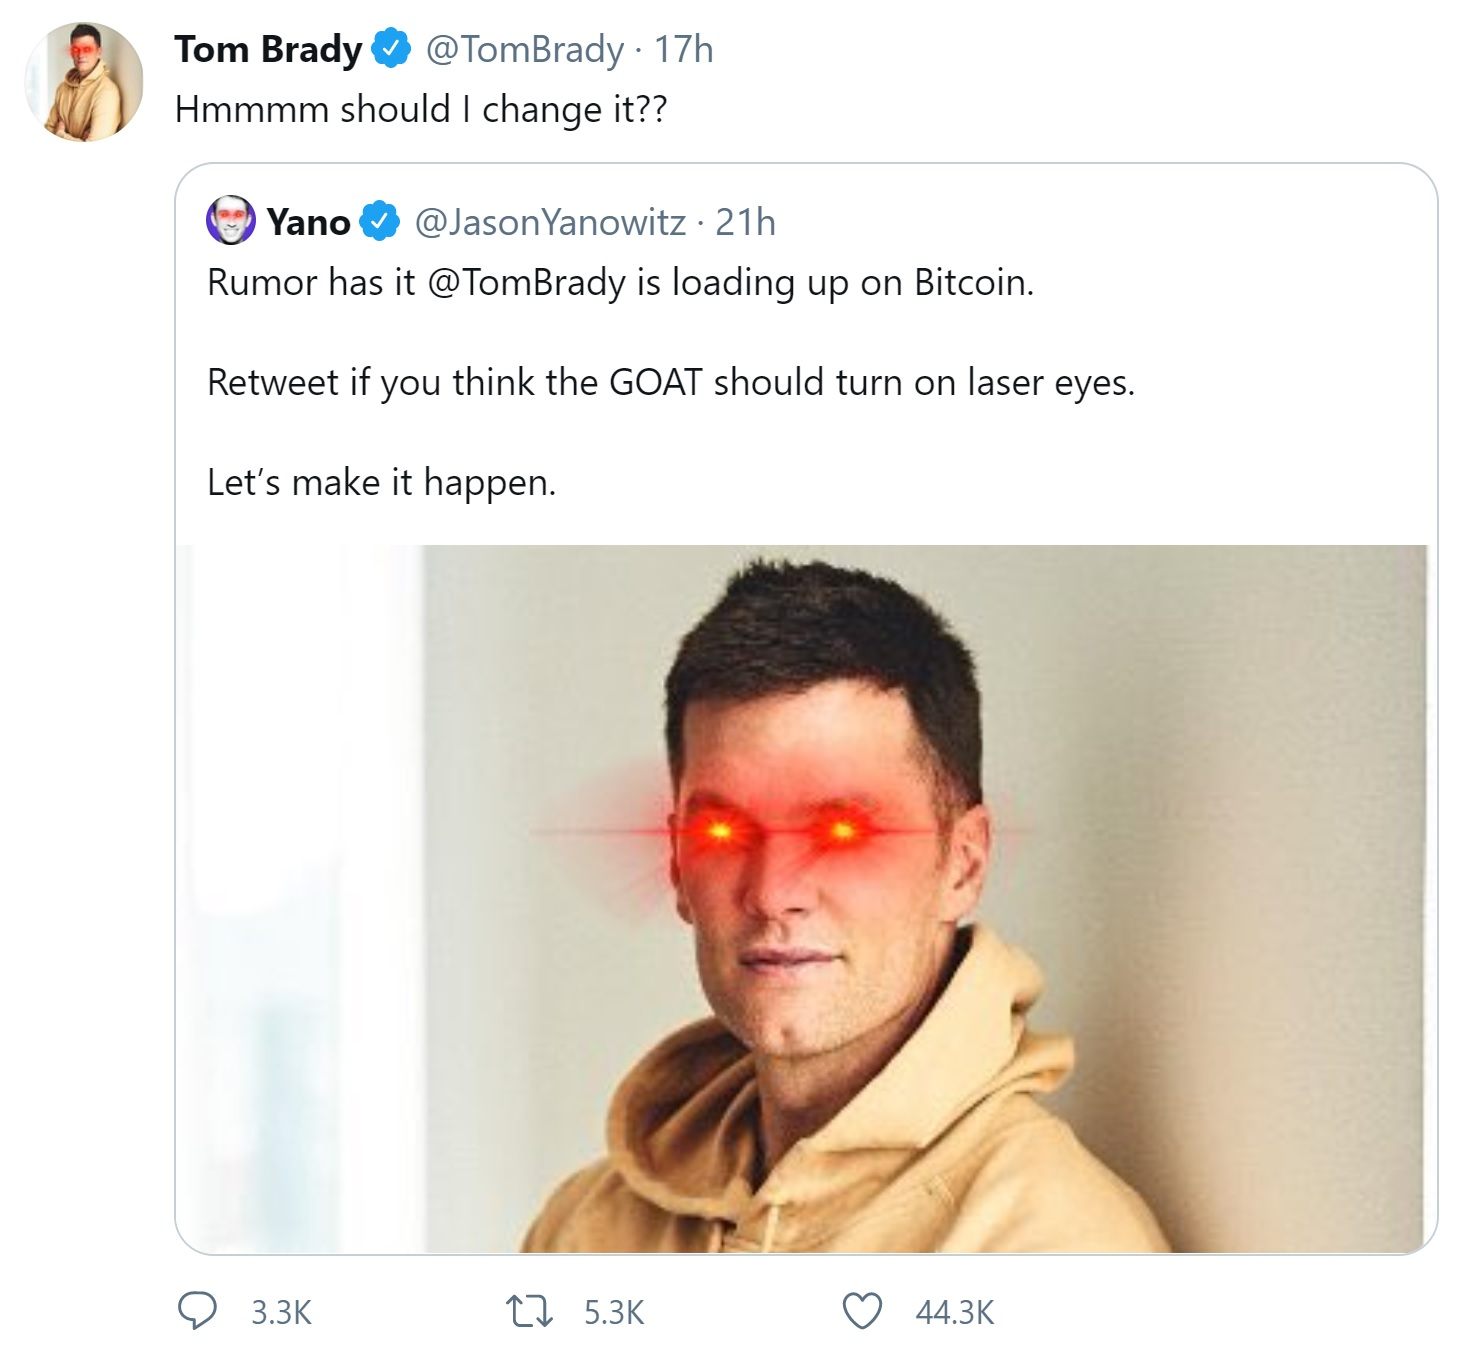 NFL Star Quarterback Tom Brady Hops on the Bitcoin Bandwagon, Turns on Laser Eyes